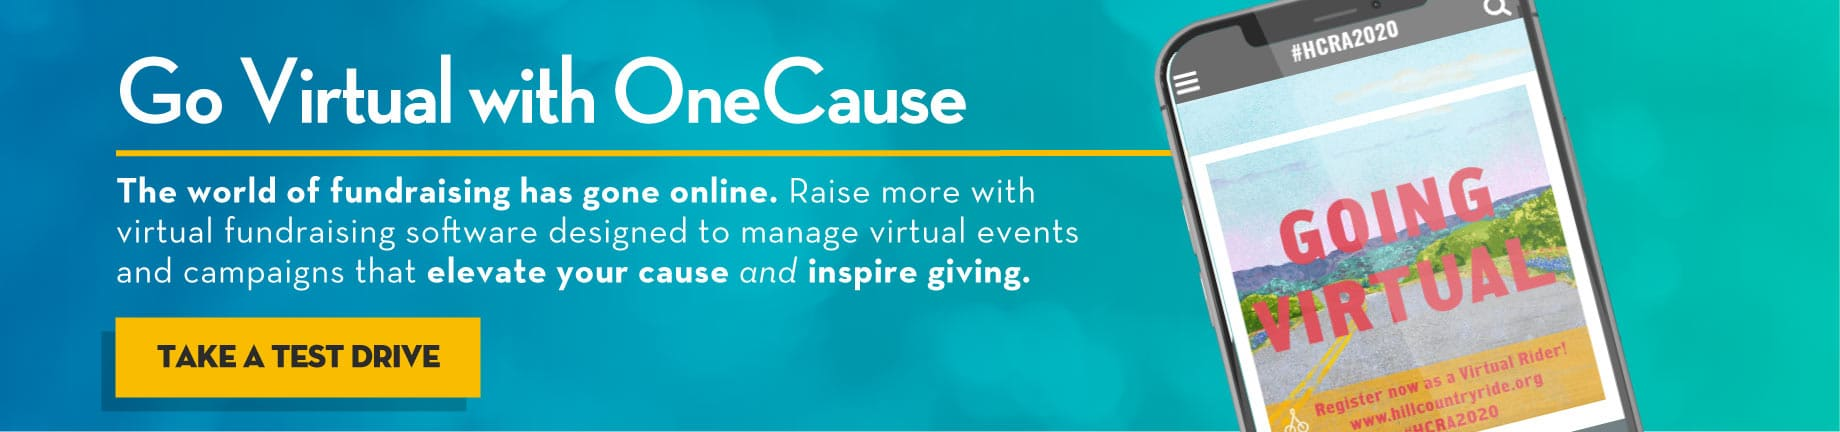 Go Virtual With OneCause. Take a test drive today.